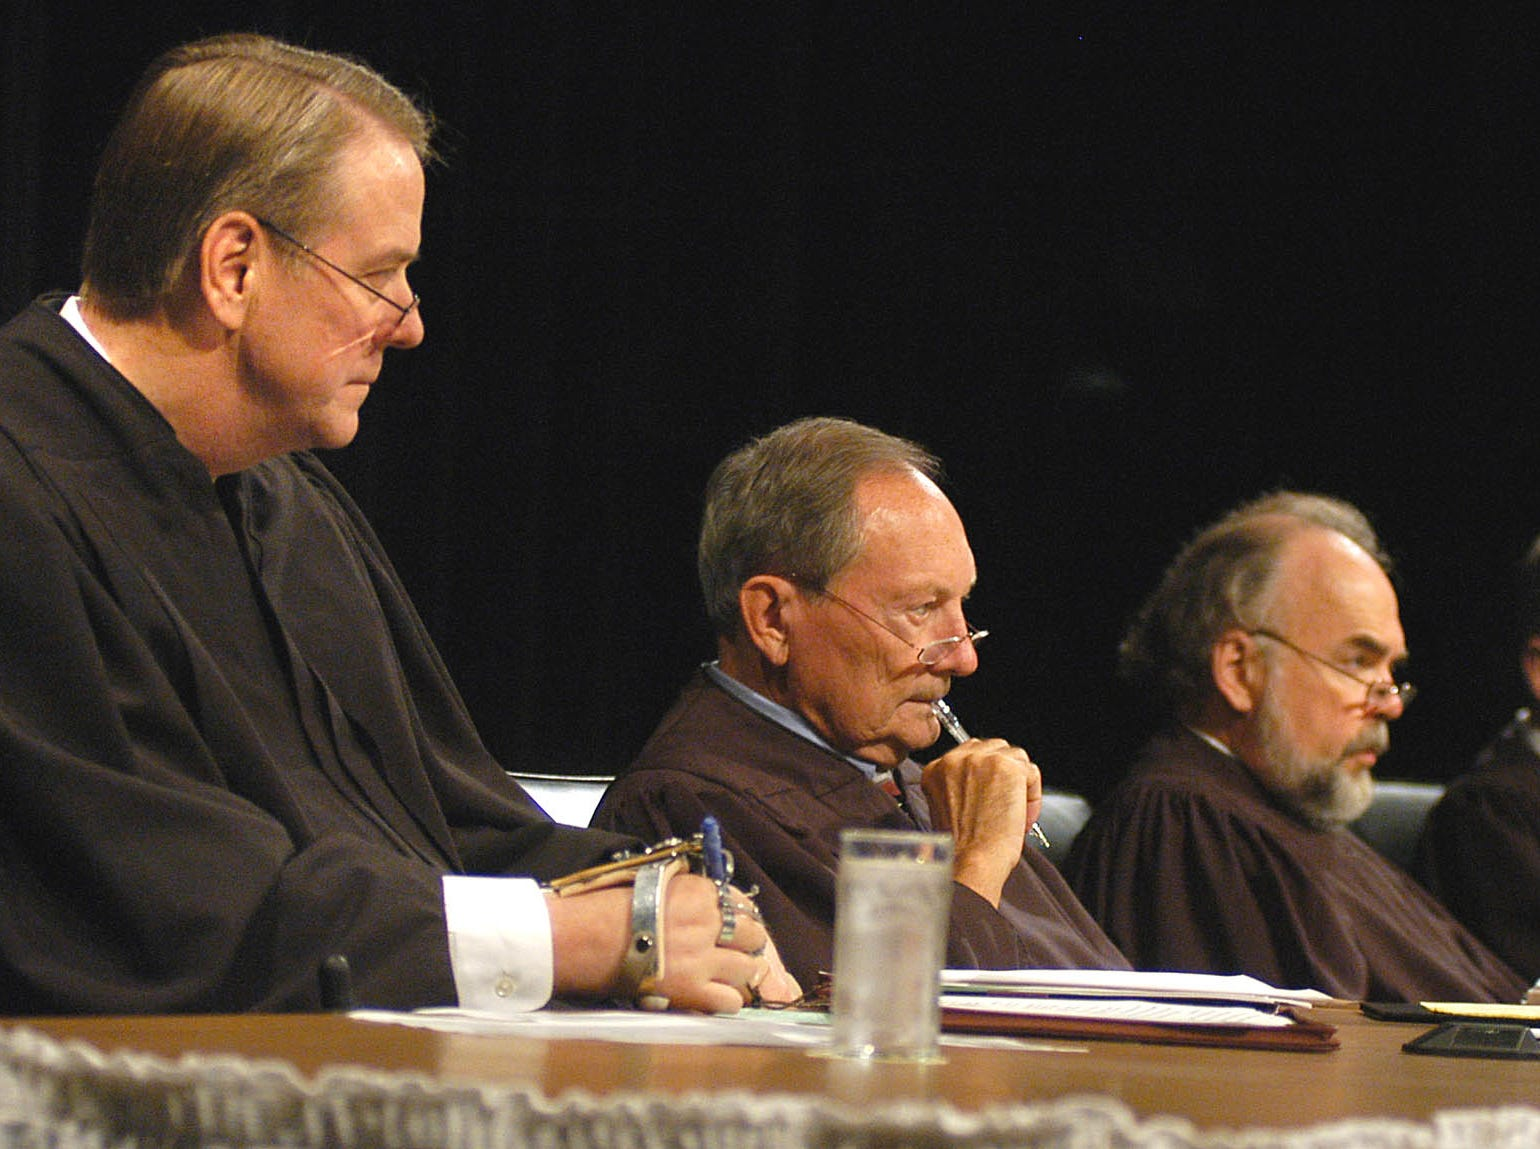 Justices, from left,  Steven Zinter, Richard Sabers, David Gilbertson and John Konenkamp listen to arguments in an appeal of a property rights dispute with the Lewis and Clark rural water pipeline Tuesday, Oct. 4, 2005, at the South Dakota Supreme Court in Aberdeen, S.D. (AP Photo/Doug Dreyer)